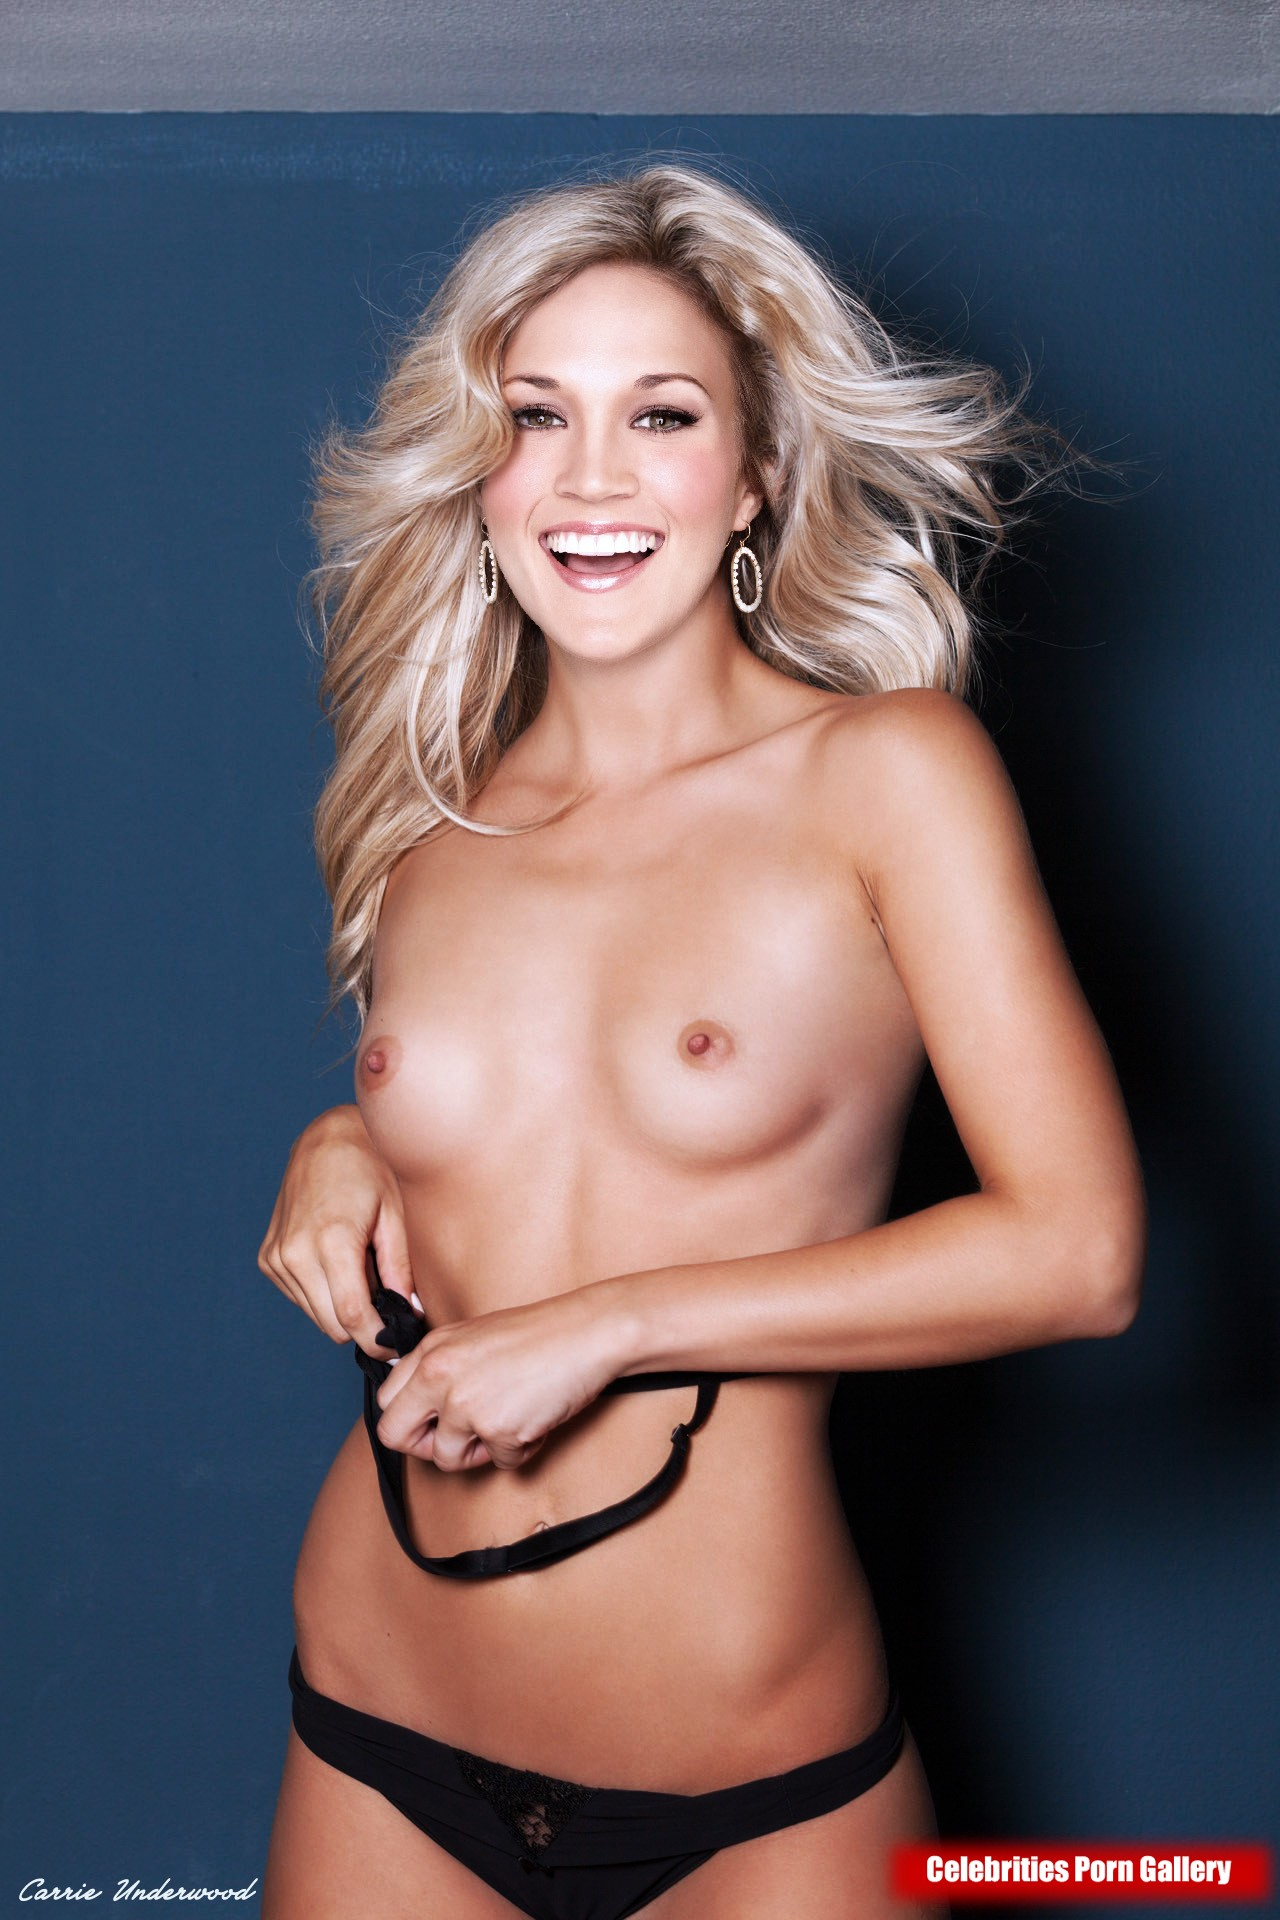 Carrie Underwood Nude